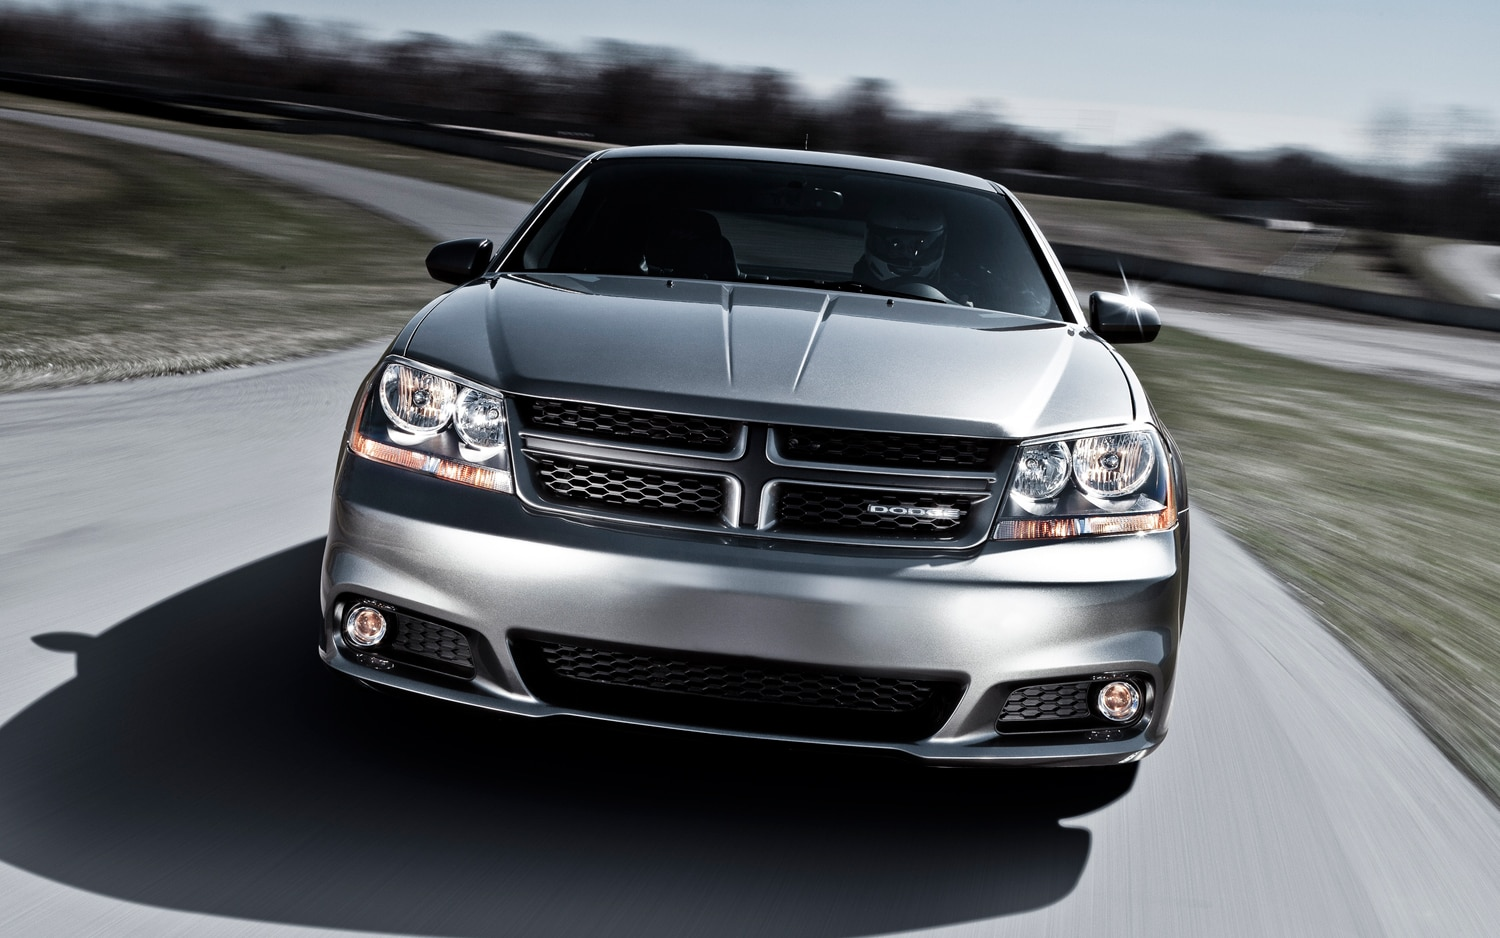 2012 Dodge Avenger RT Front1